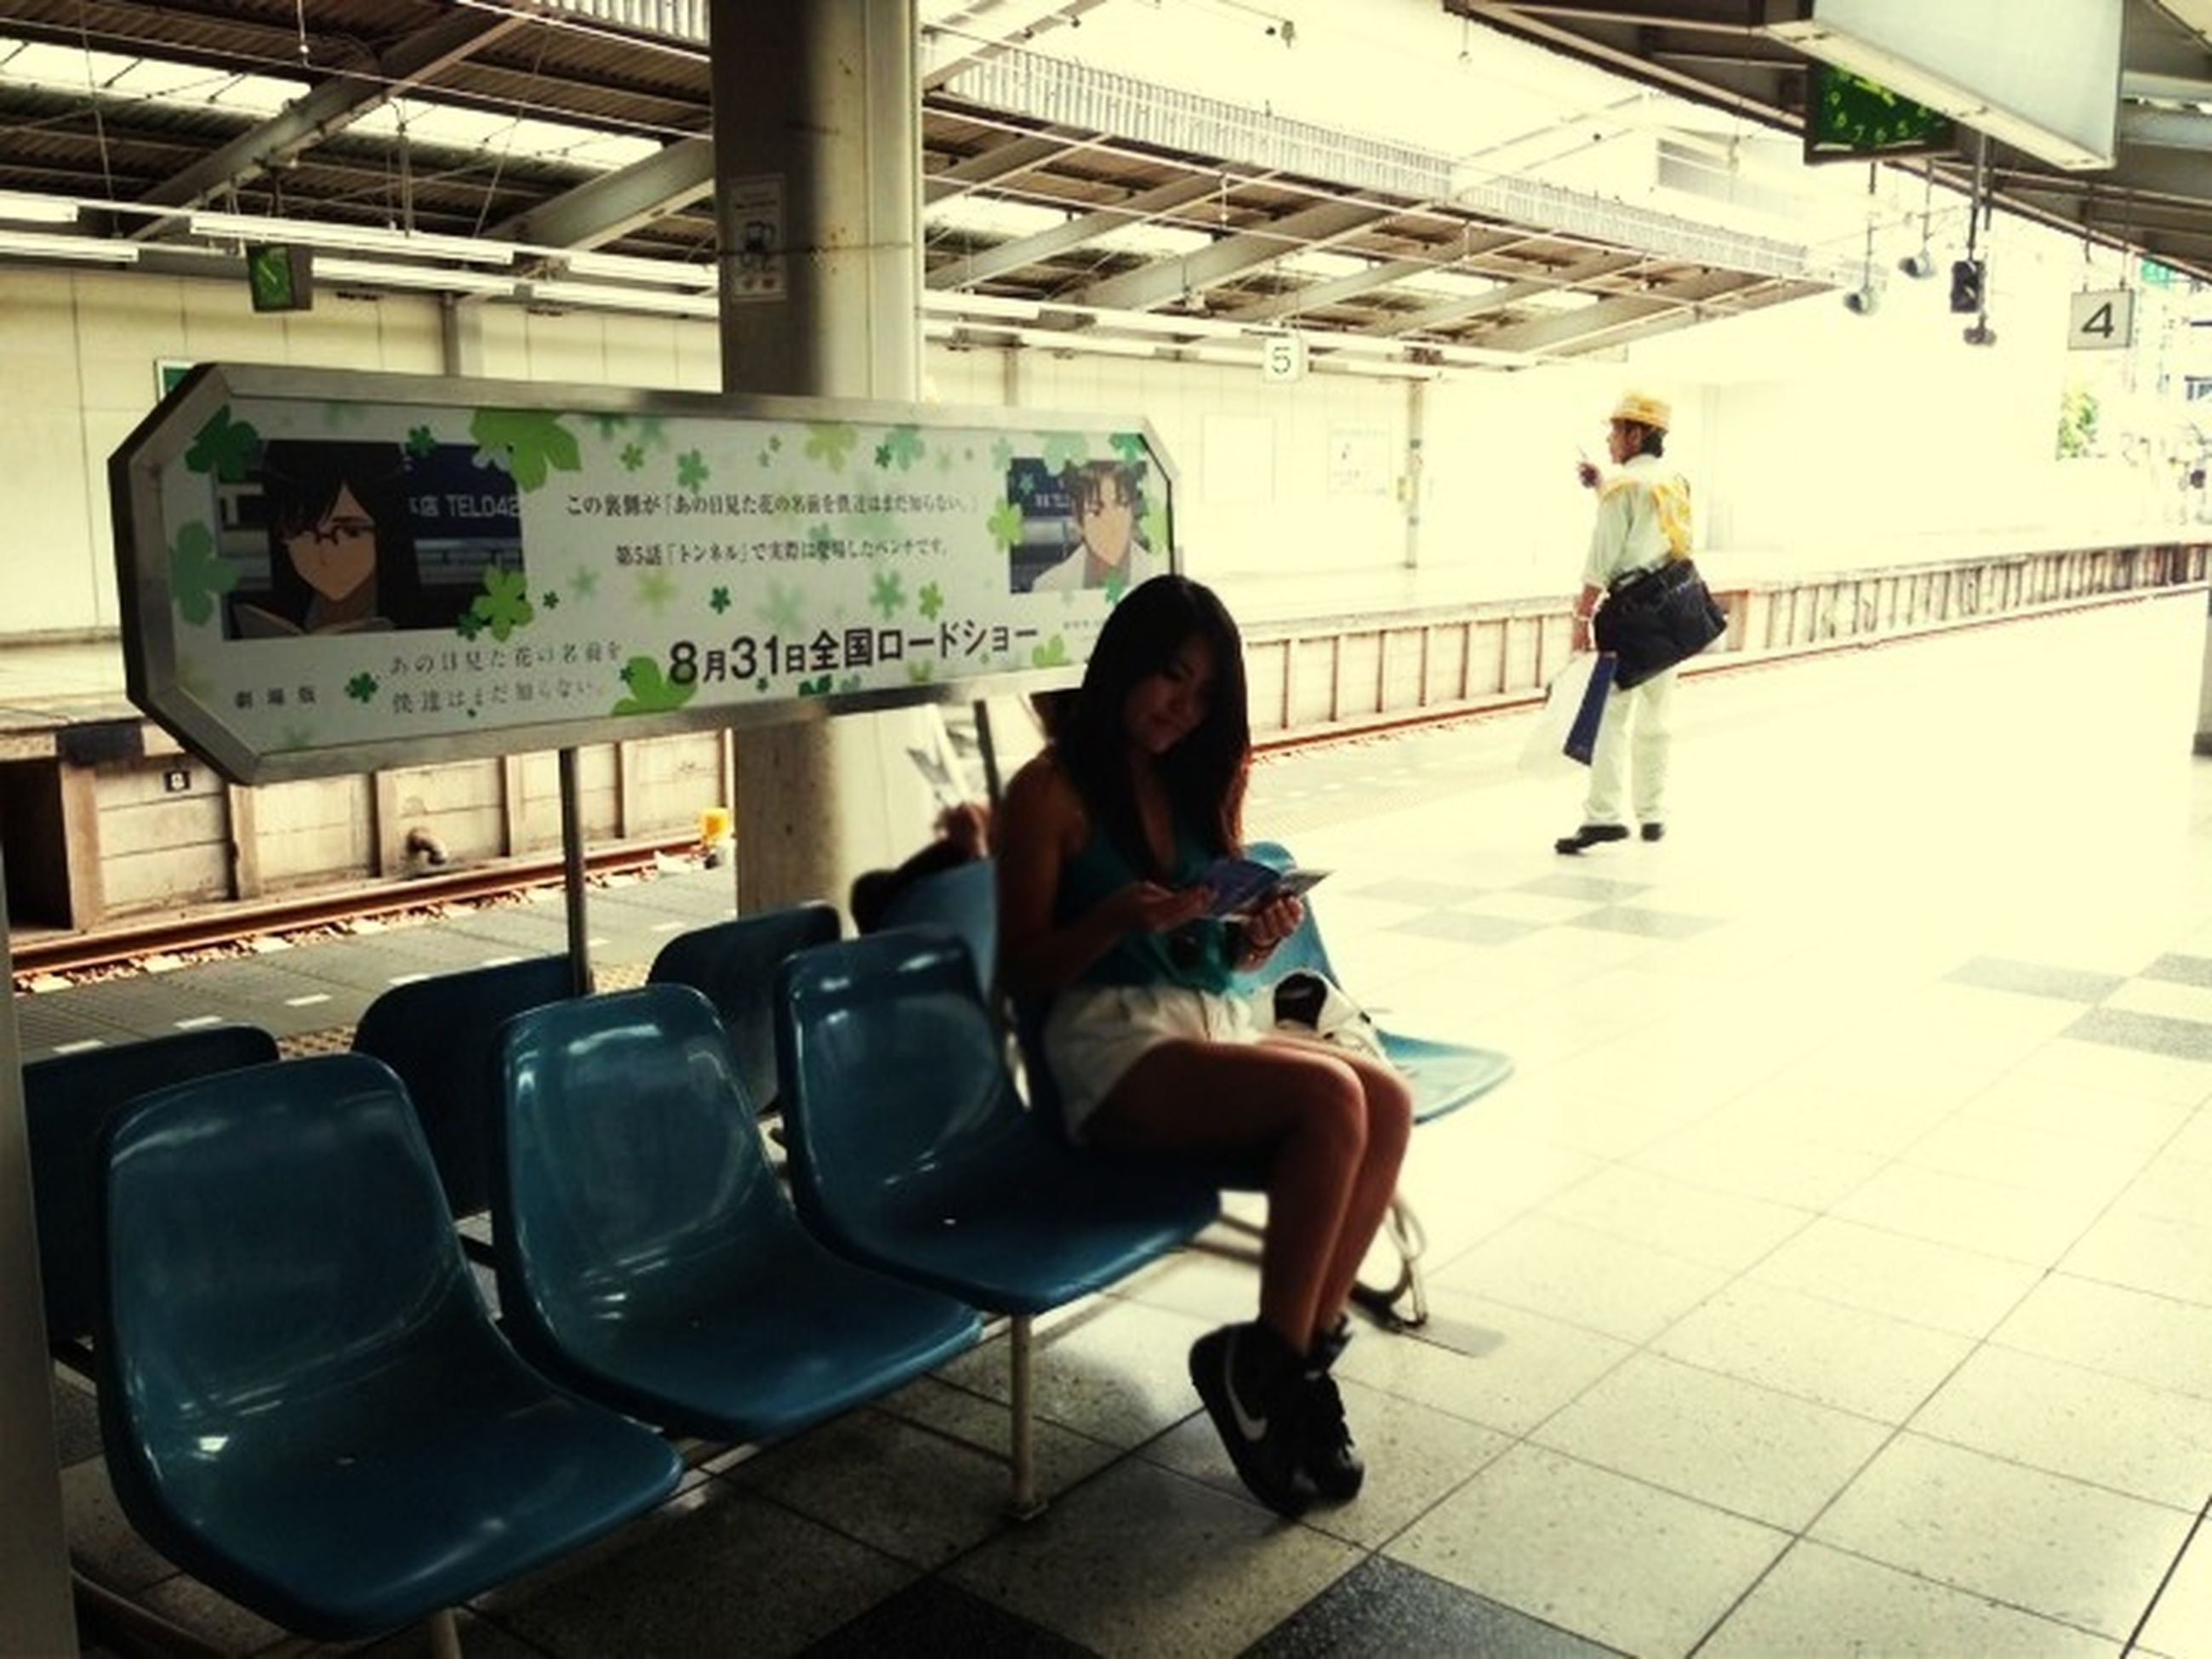 lifestyles, indoors, full length, communication, leisure activity, casual clothing, public transportation, transportation, railroad station platform, railroad station, travel, sitting, men, technology, passenger, text, standing, person